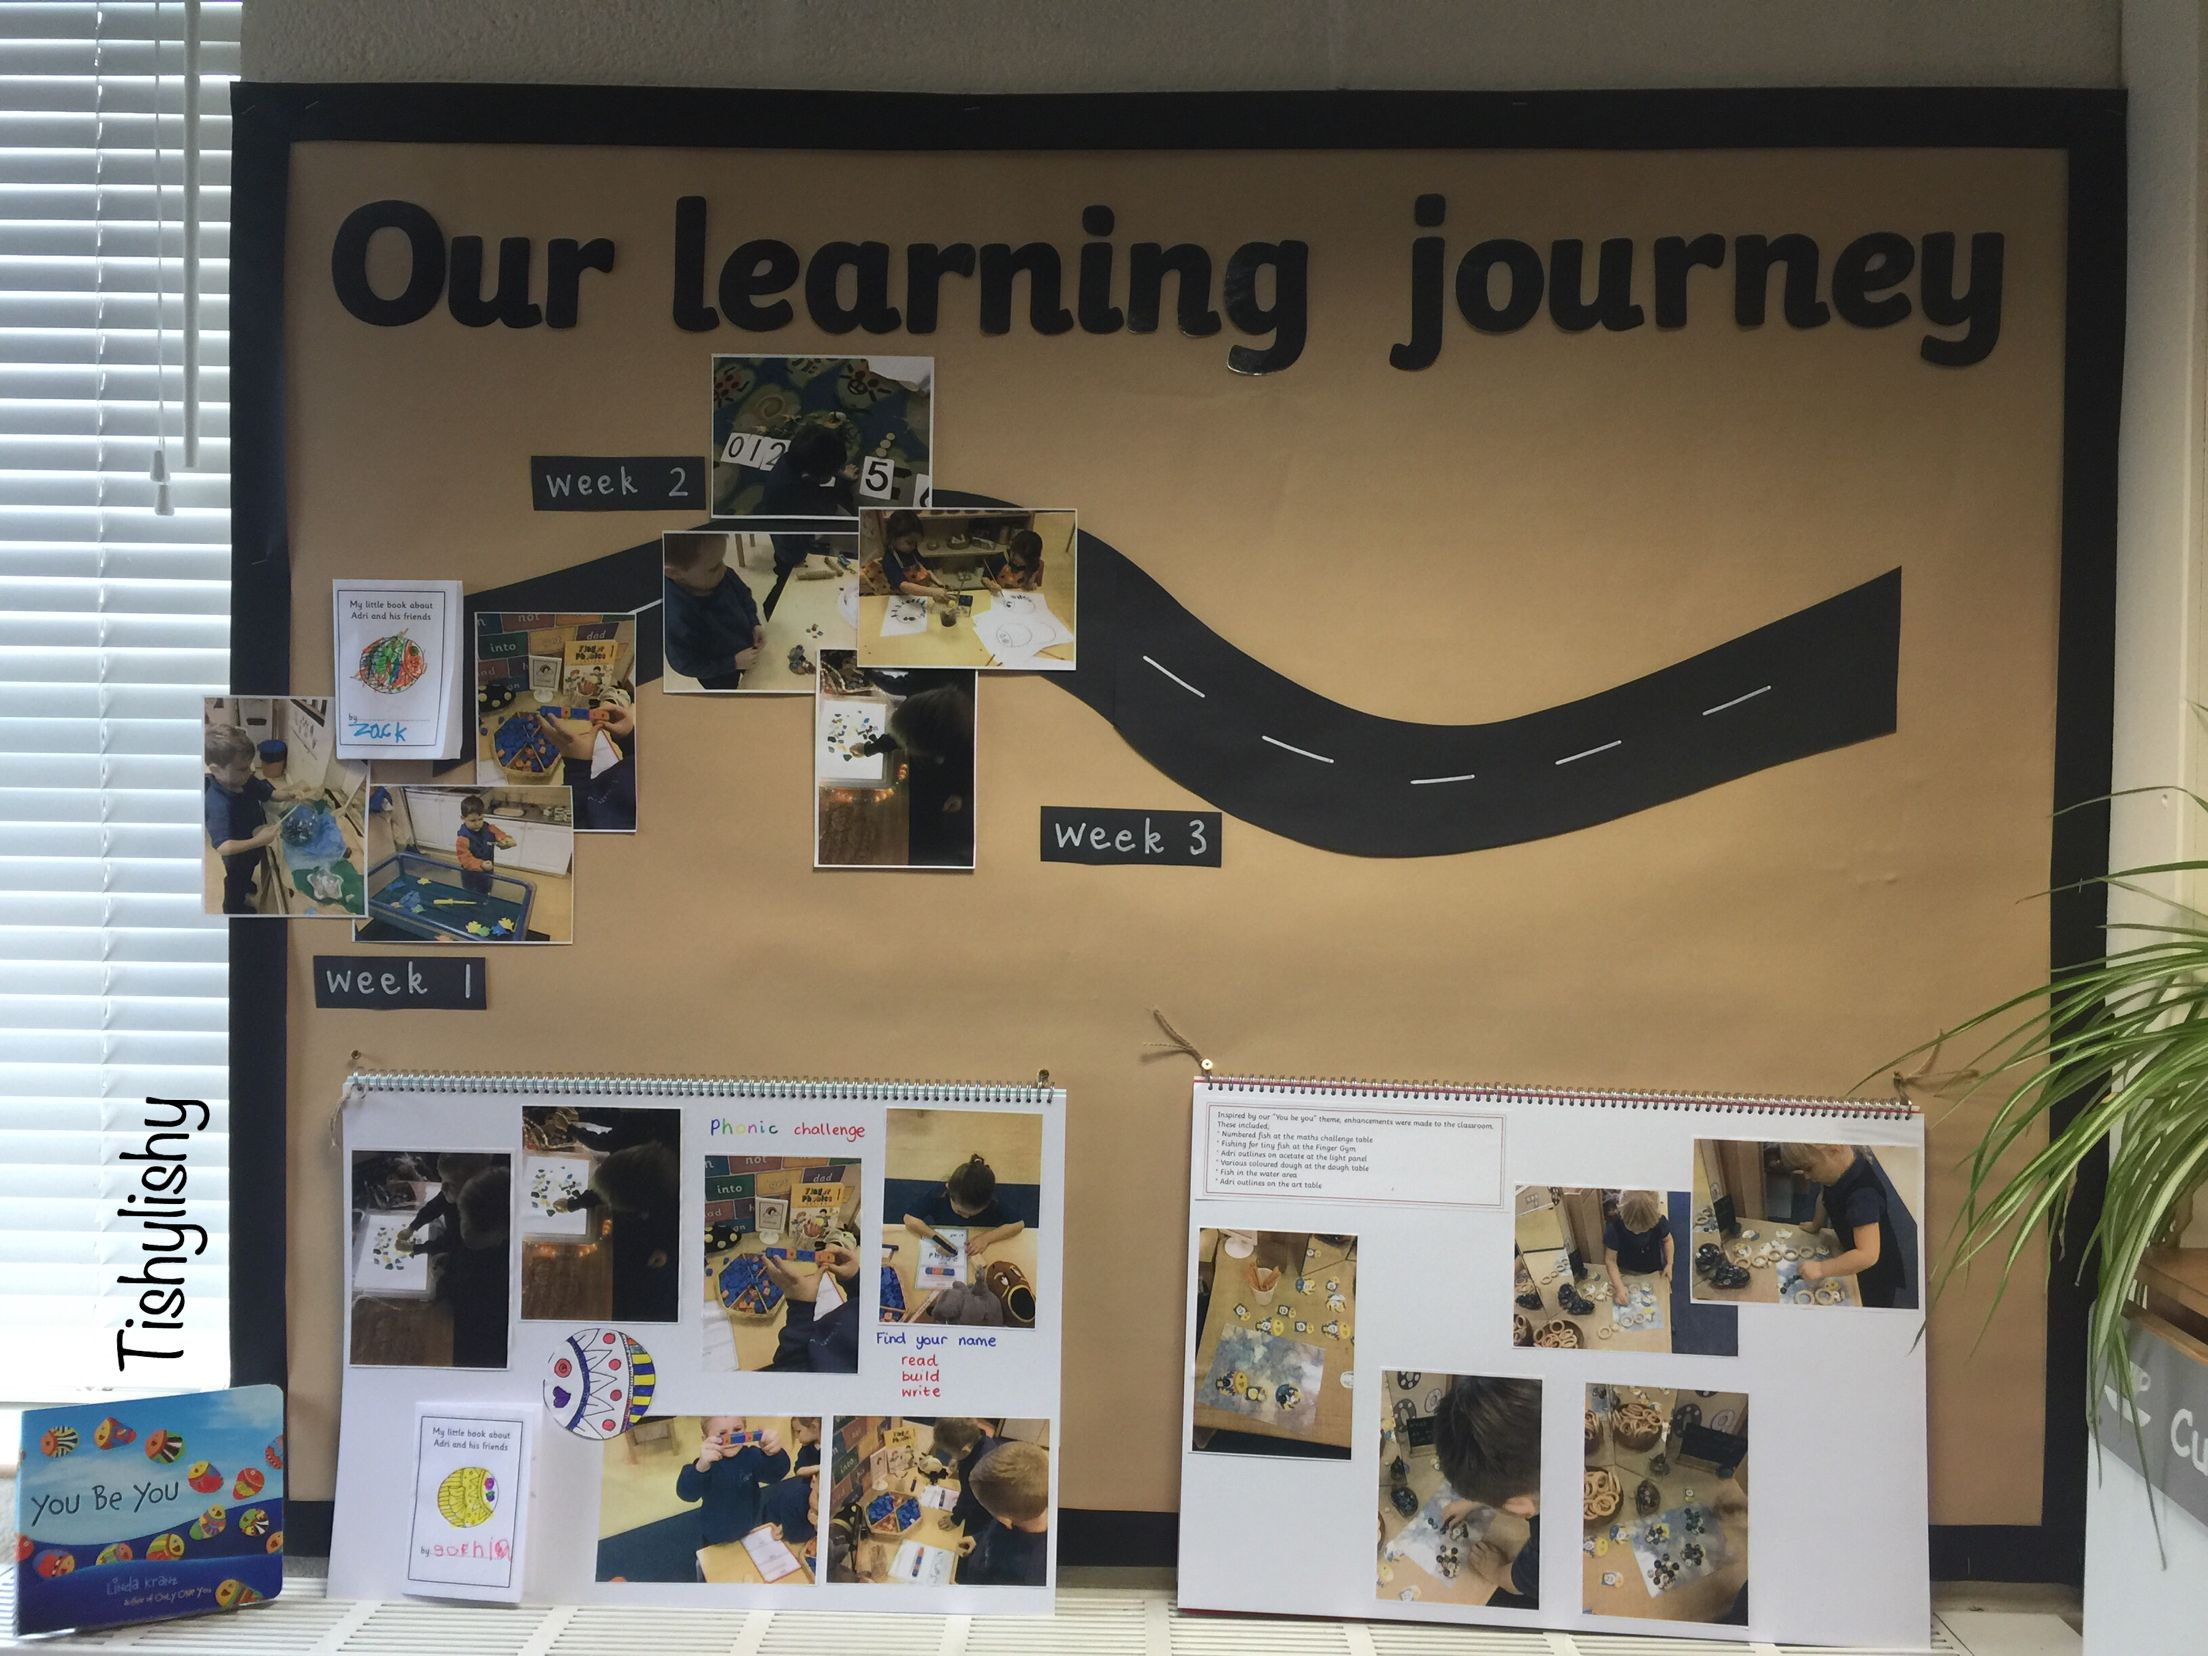 Modern Classroom Assessment Book : Our learning journey and floor books display emergent